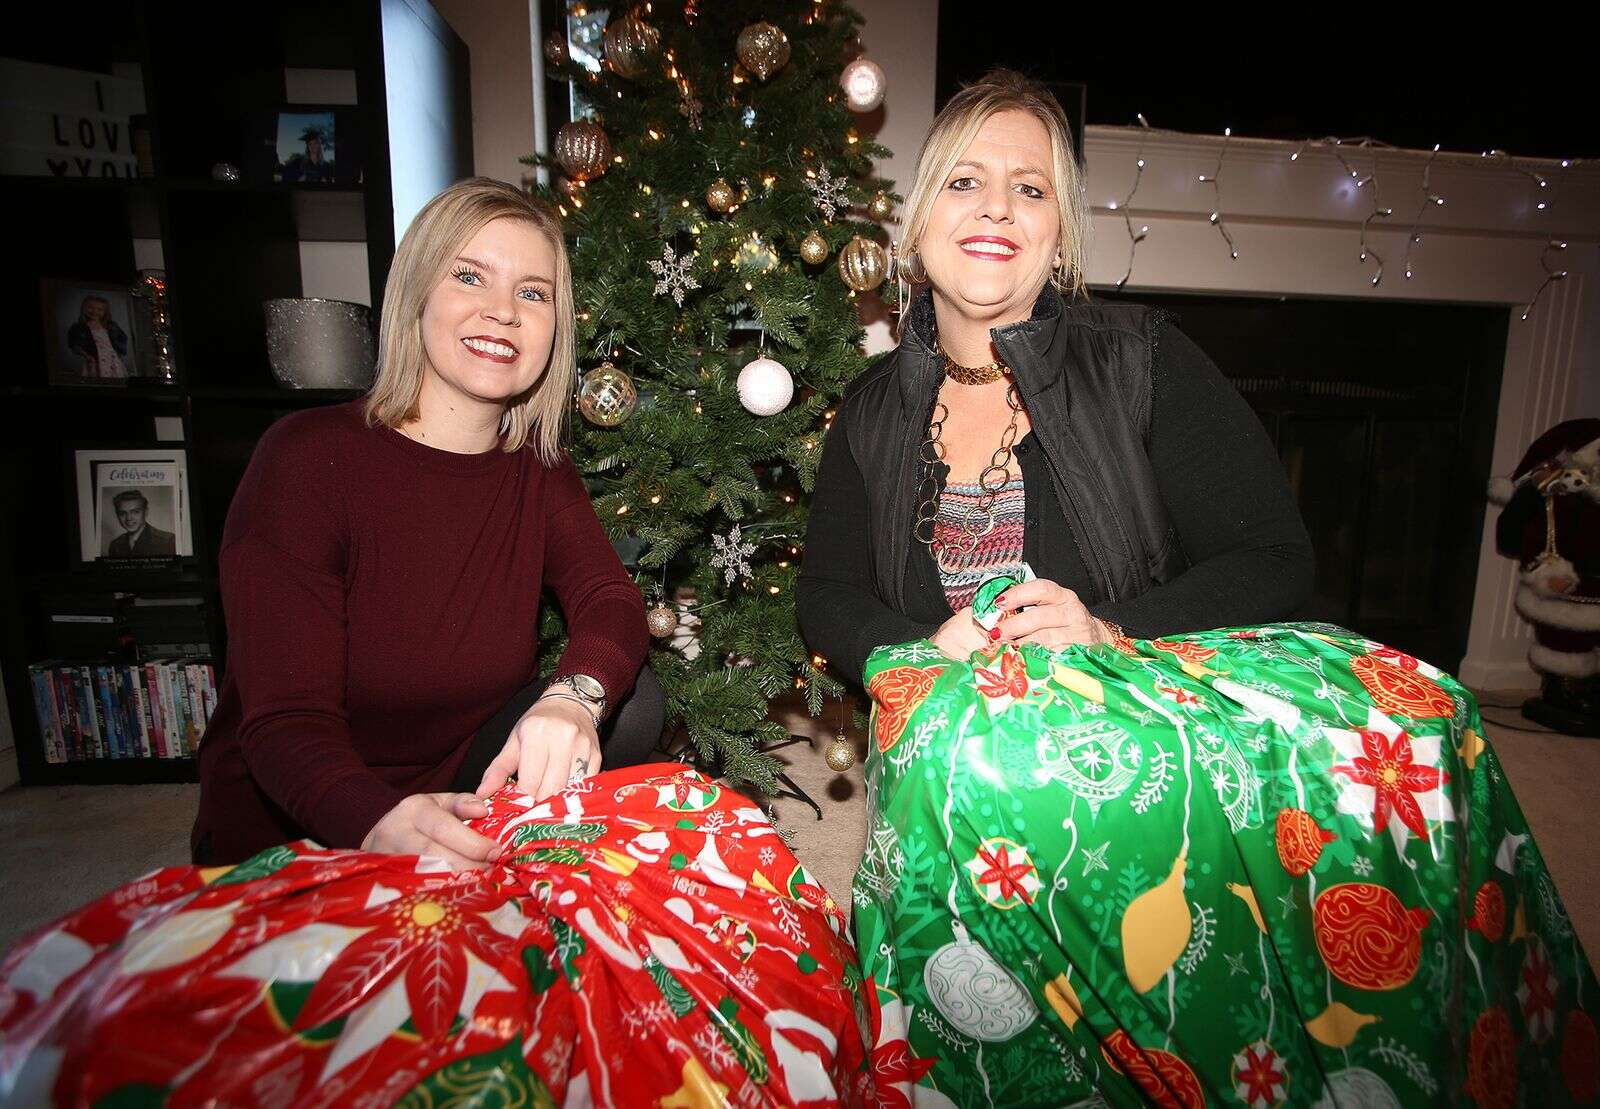 Savannah's Angels co-founders Crystal Grauke (left) and Cynthia Prout hold bags full of gifts slated for children in the community this year. The two are looking for some last minute angels to help out with some families in need this holiday.   Photo: Elias Funez